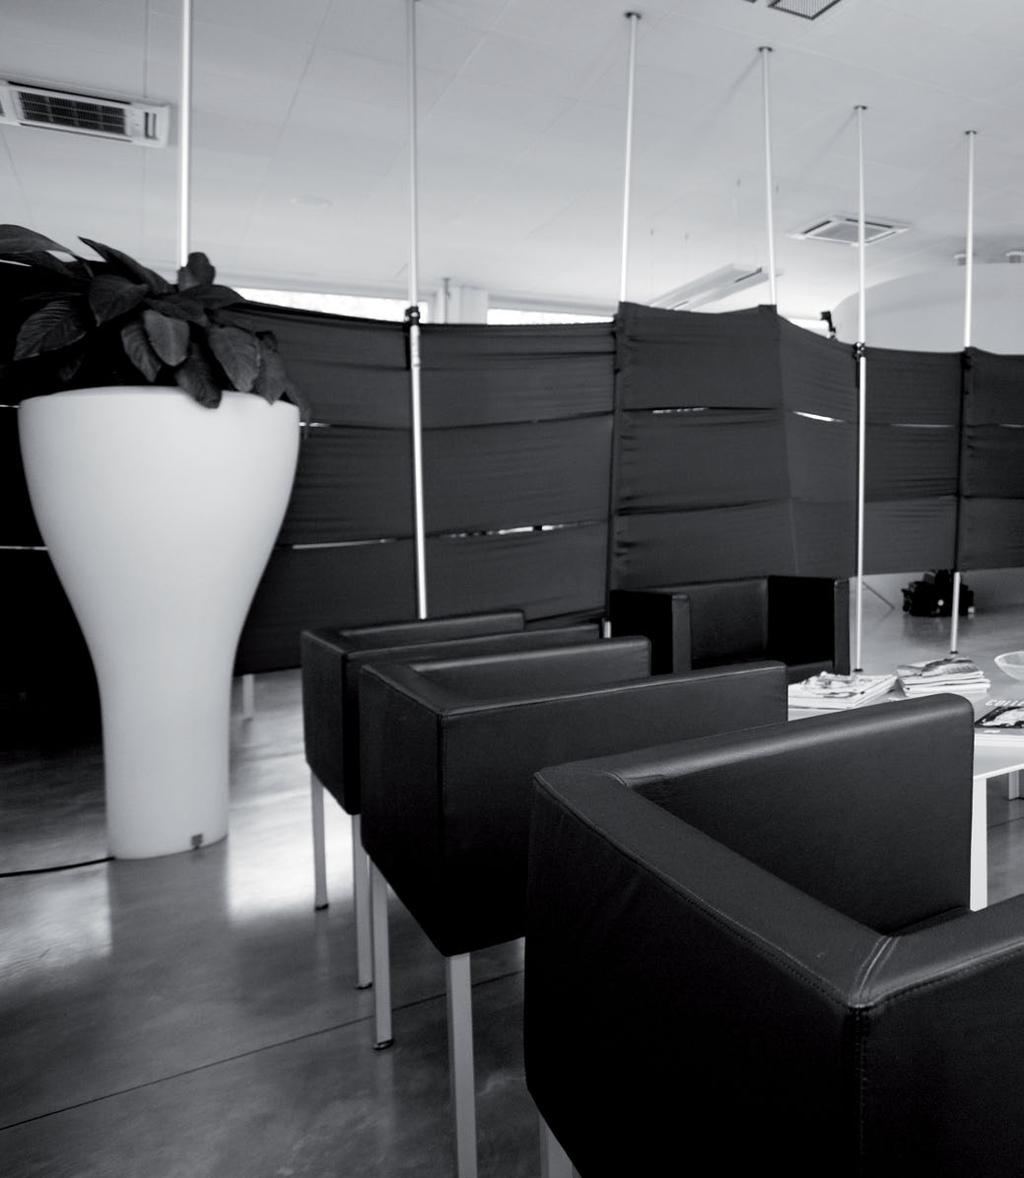 DESIGNING SHOES FOR WOMEN: A PROFESSIONAL PASSION In 1986, Alfio and Danilo Biondi opened an atelier-workshop where to design shoes for women.